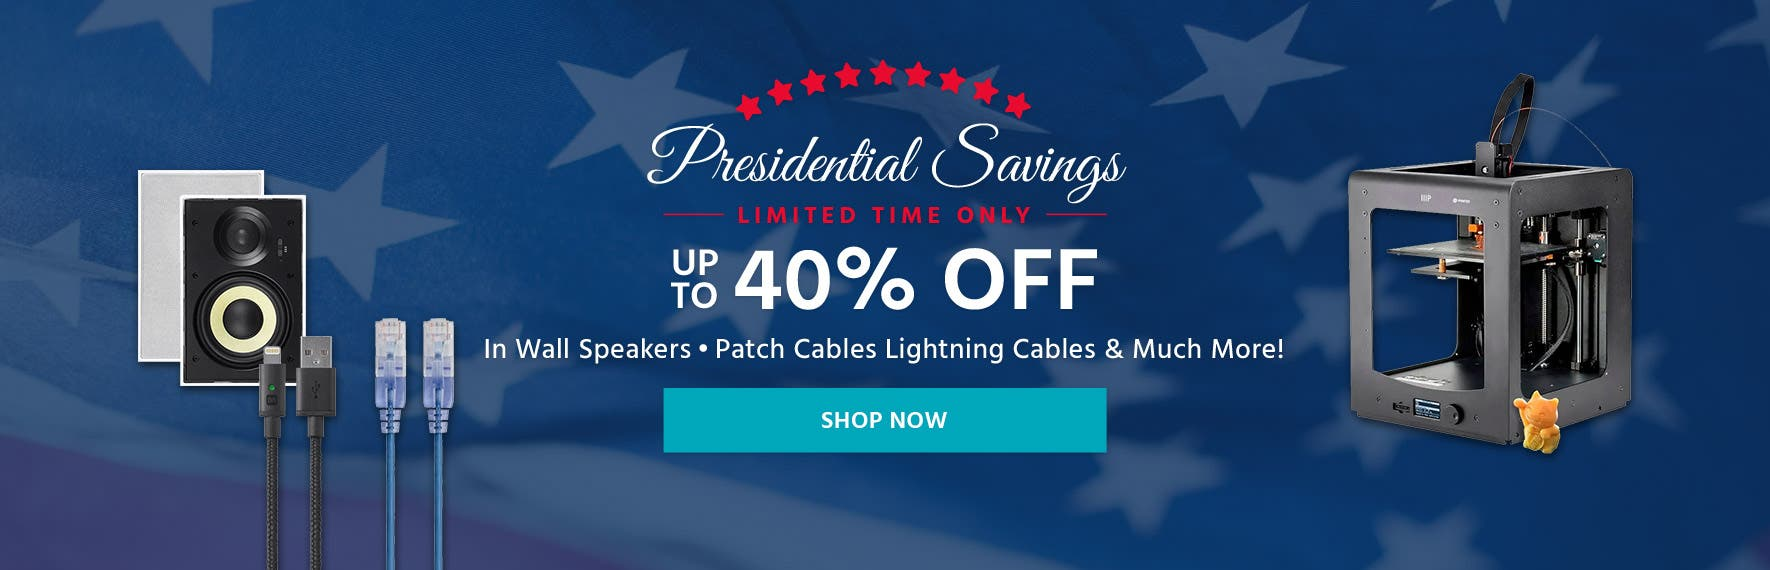 Presidential Savings Up to 40% off Deals Limited Time Only